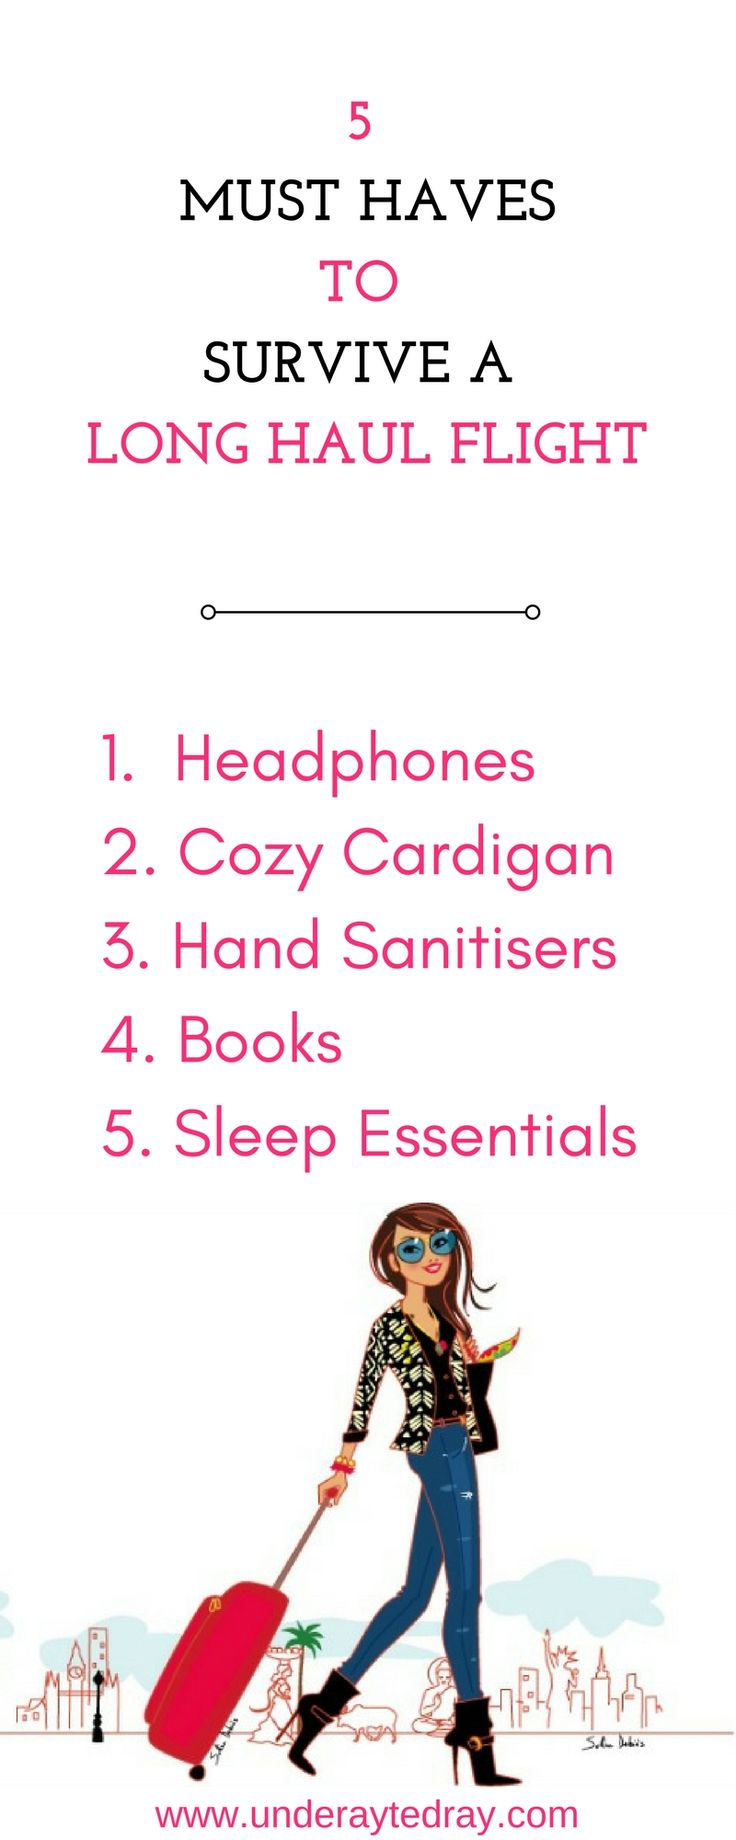 Travel essentials| travel essentials for women| international travel checklist| travel essentials for long lights| hand luggage travel checklist| carry on essentials| what to wear on flights| how to sleep on flights